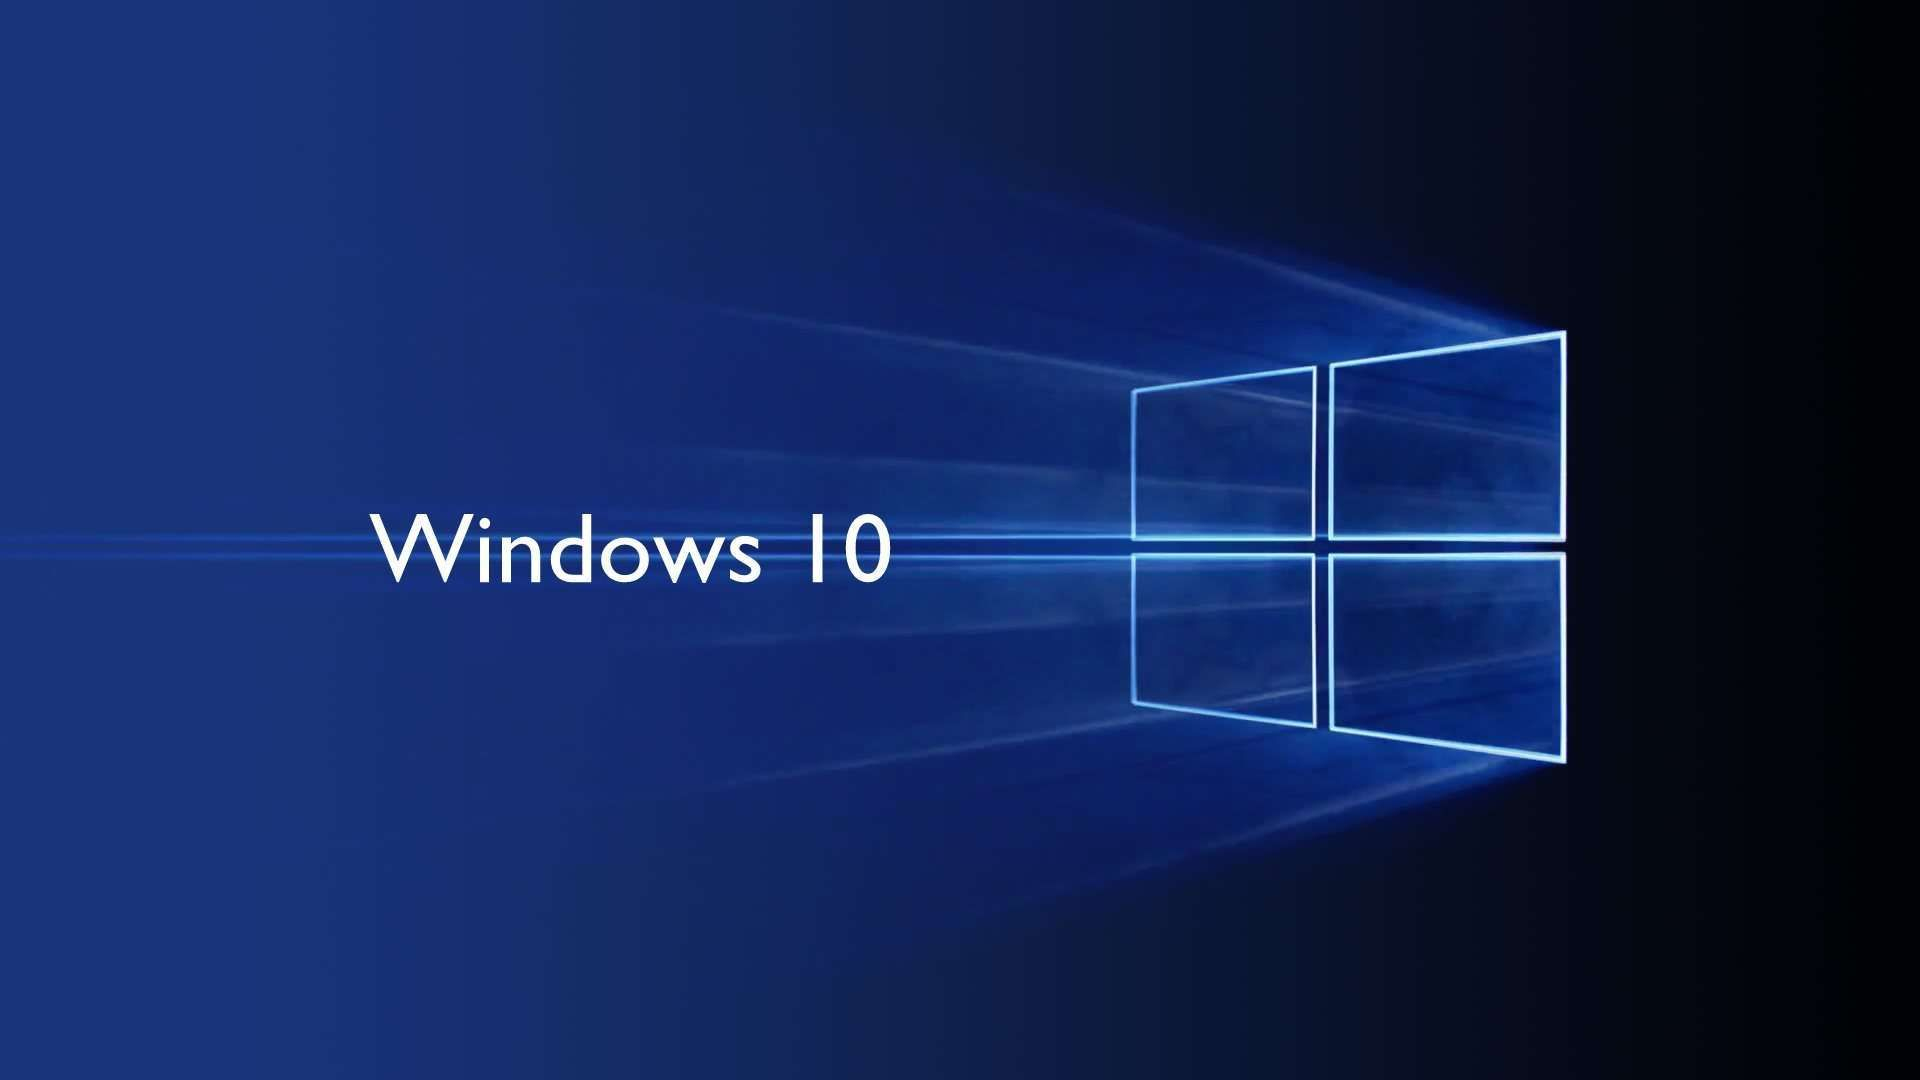 Windows 10 Hd Desktop 1080p Hdwallwide Com Windows 10 Microsoft Wallpaper Windows 10 Microsoft